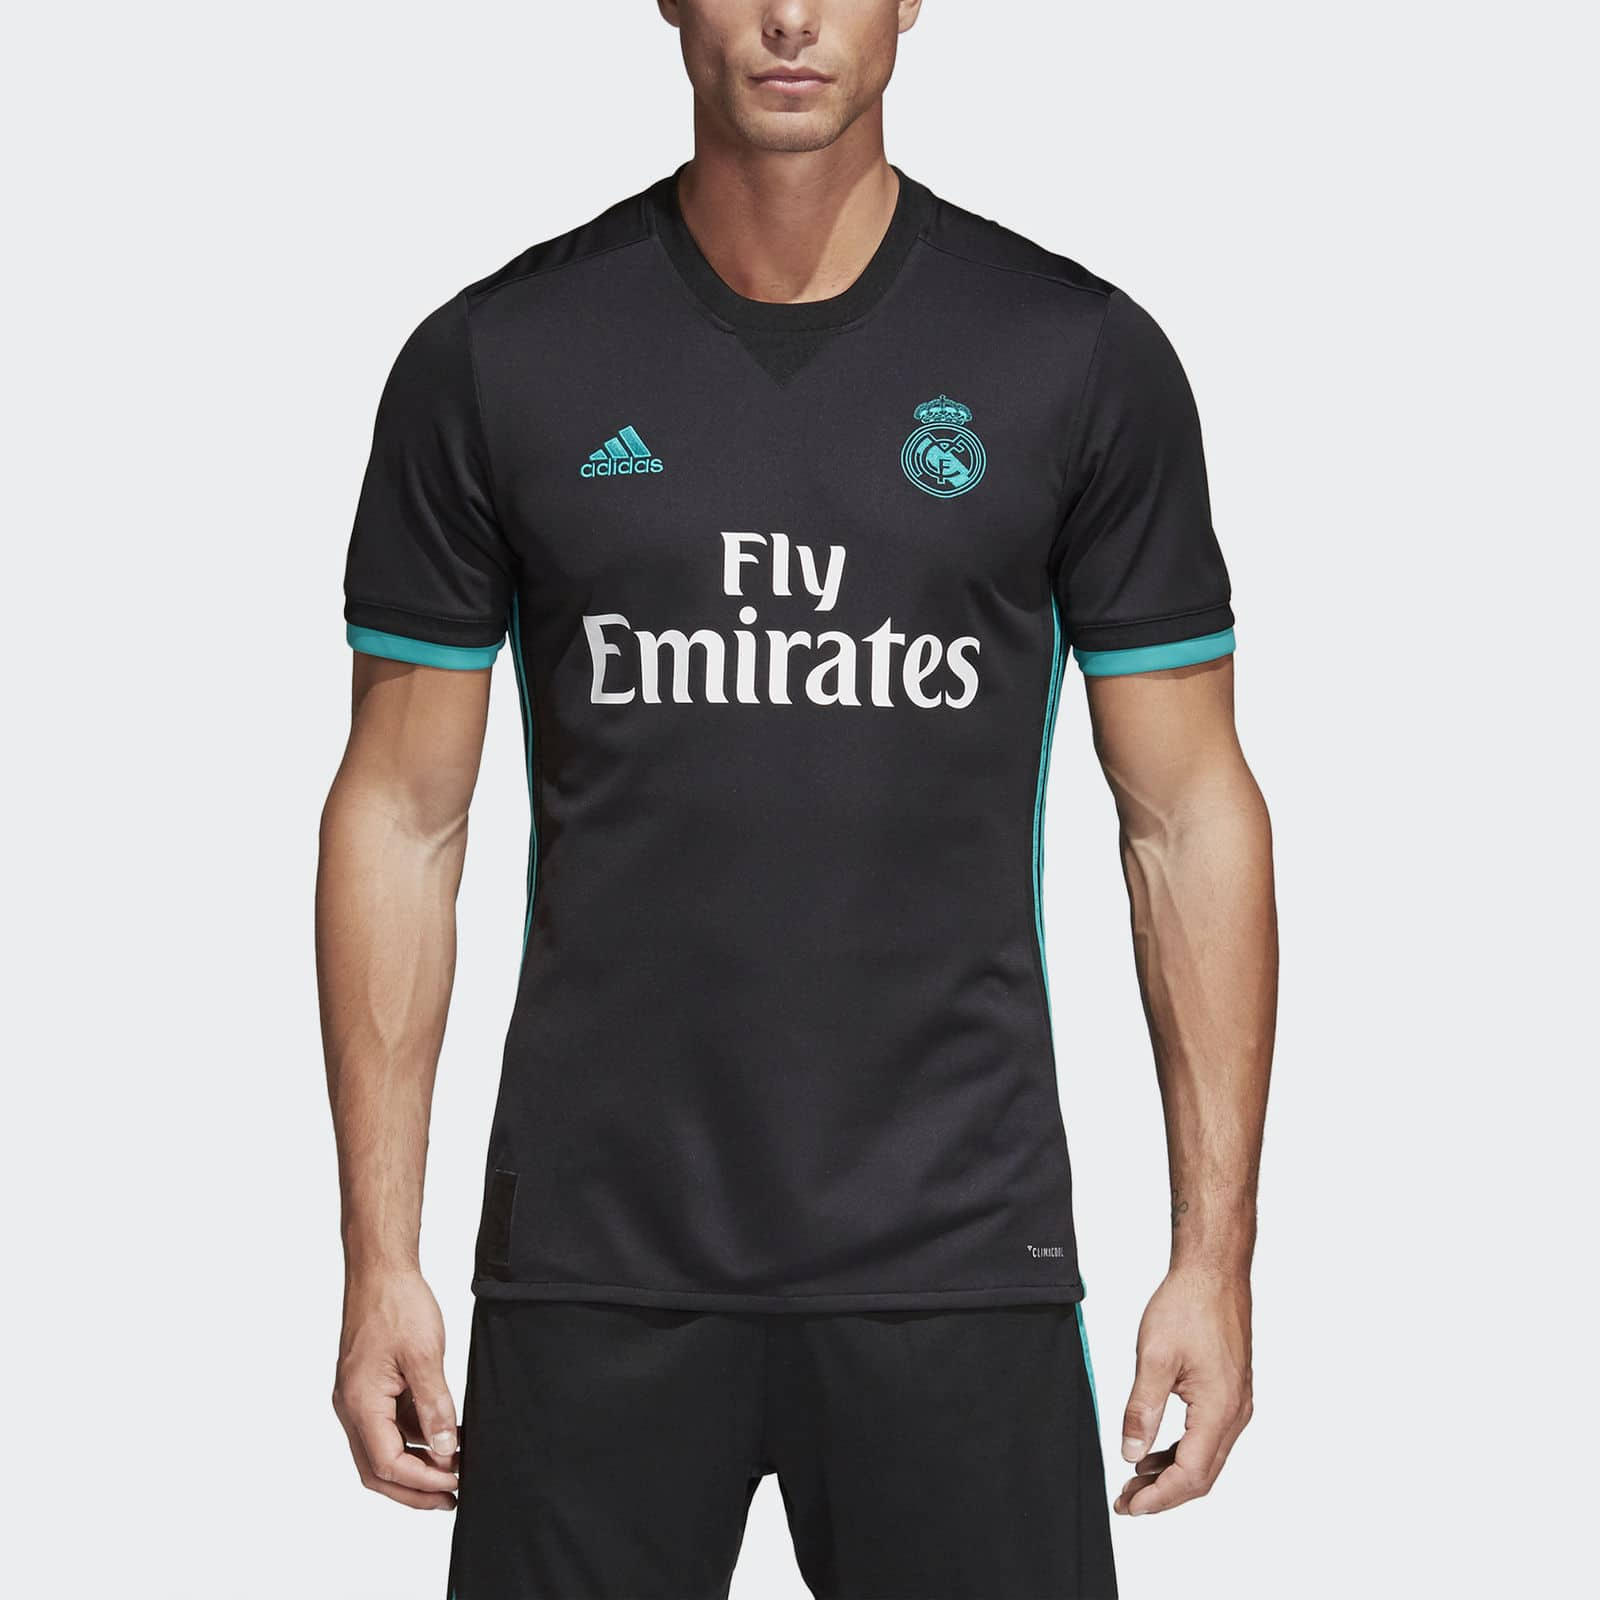 adidas Real Madrid Away Replica Jersey for Men $59.99